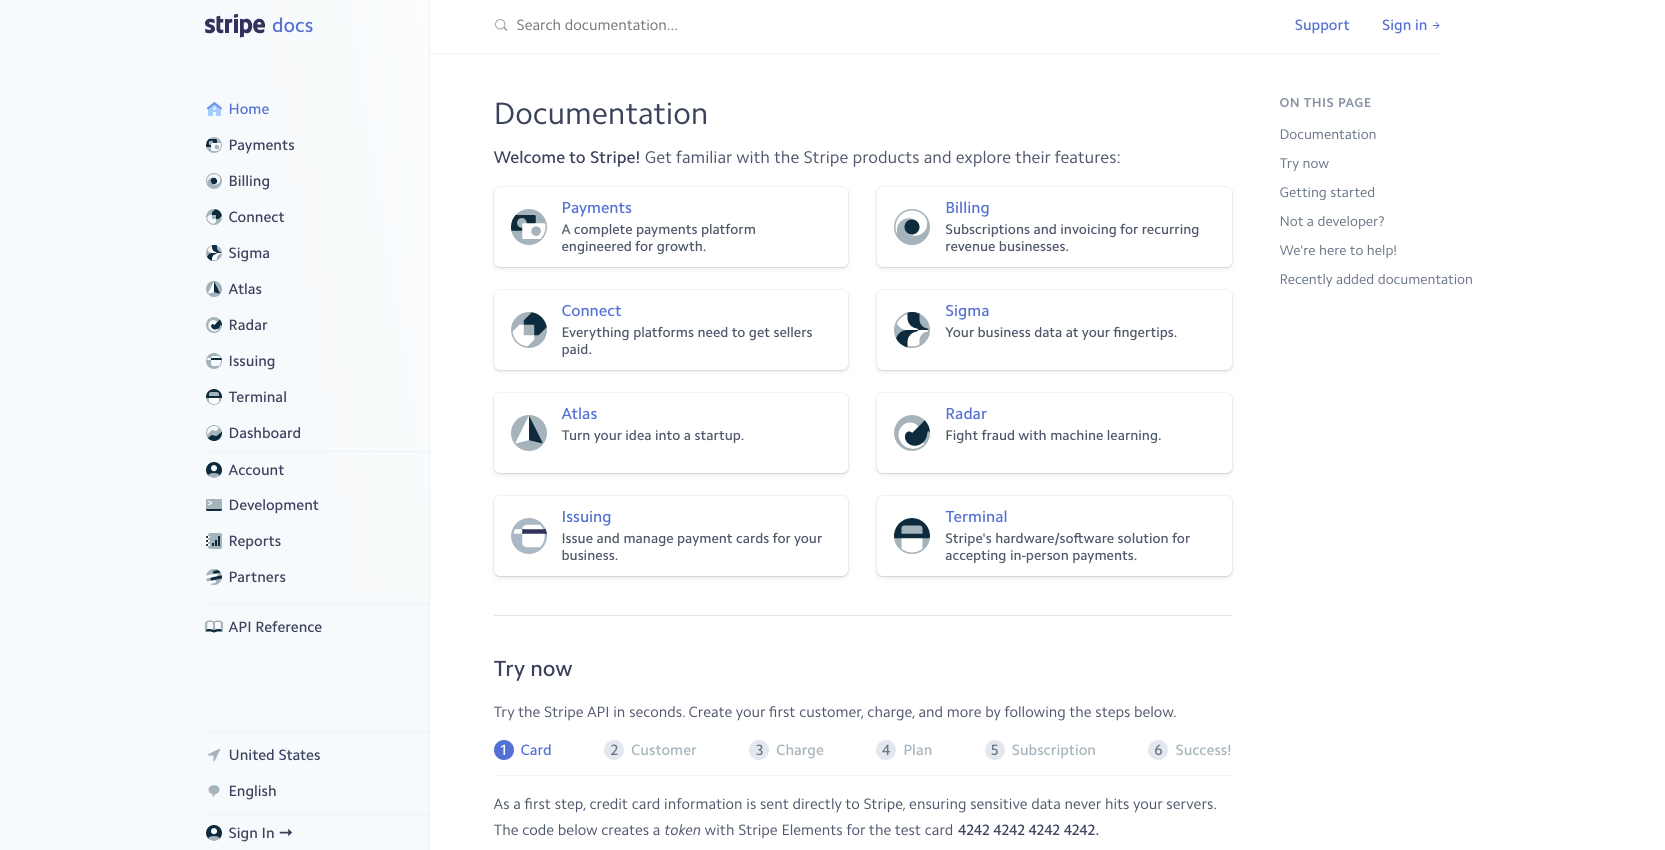 stripe help documentation. stripe is a great example of a company with excellent develper help docs